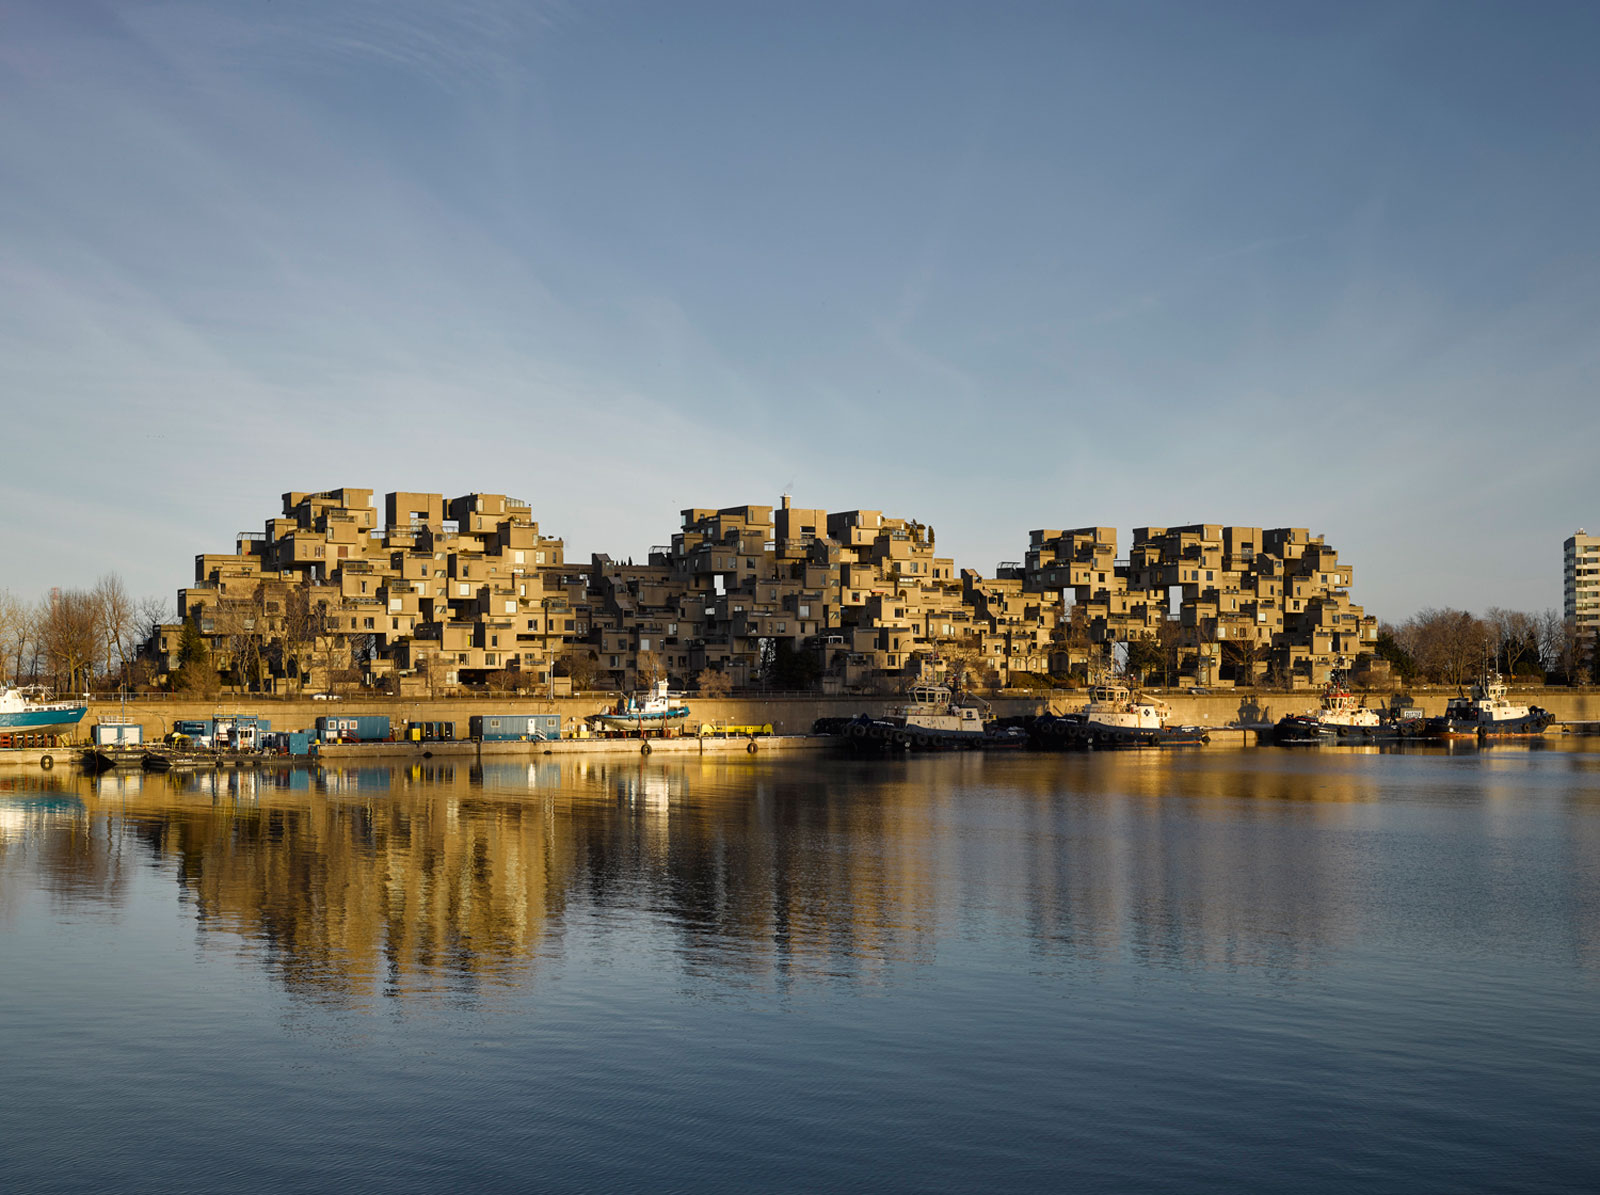 'Revisited: Habitat 67', by James Brittain